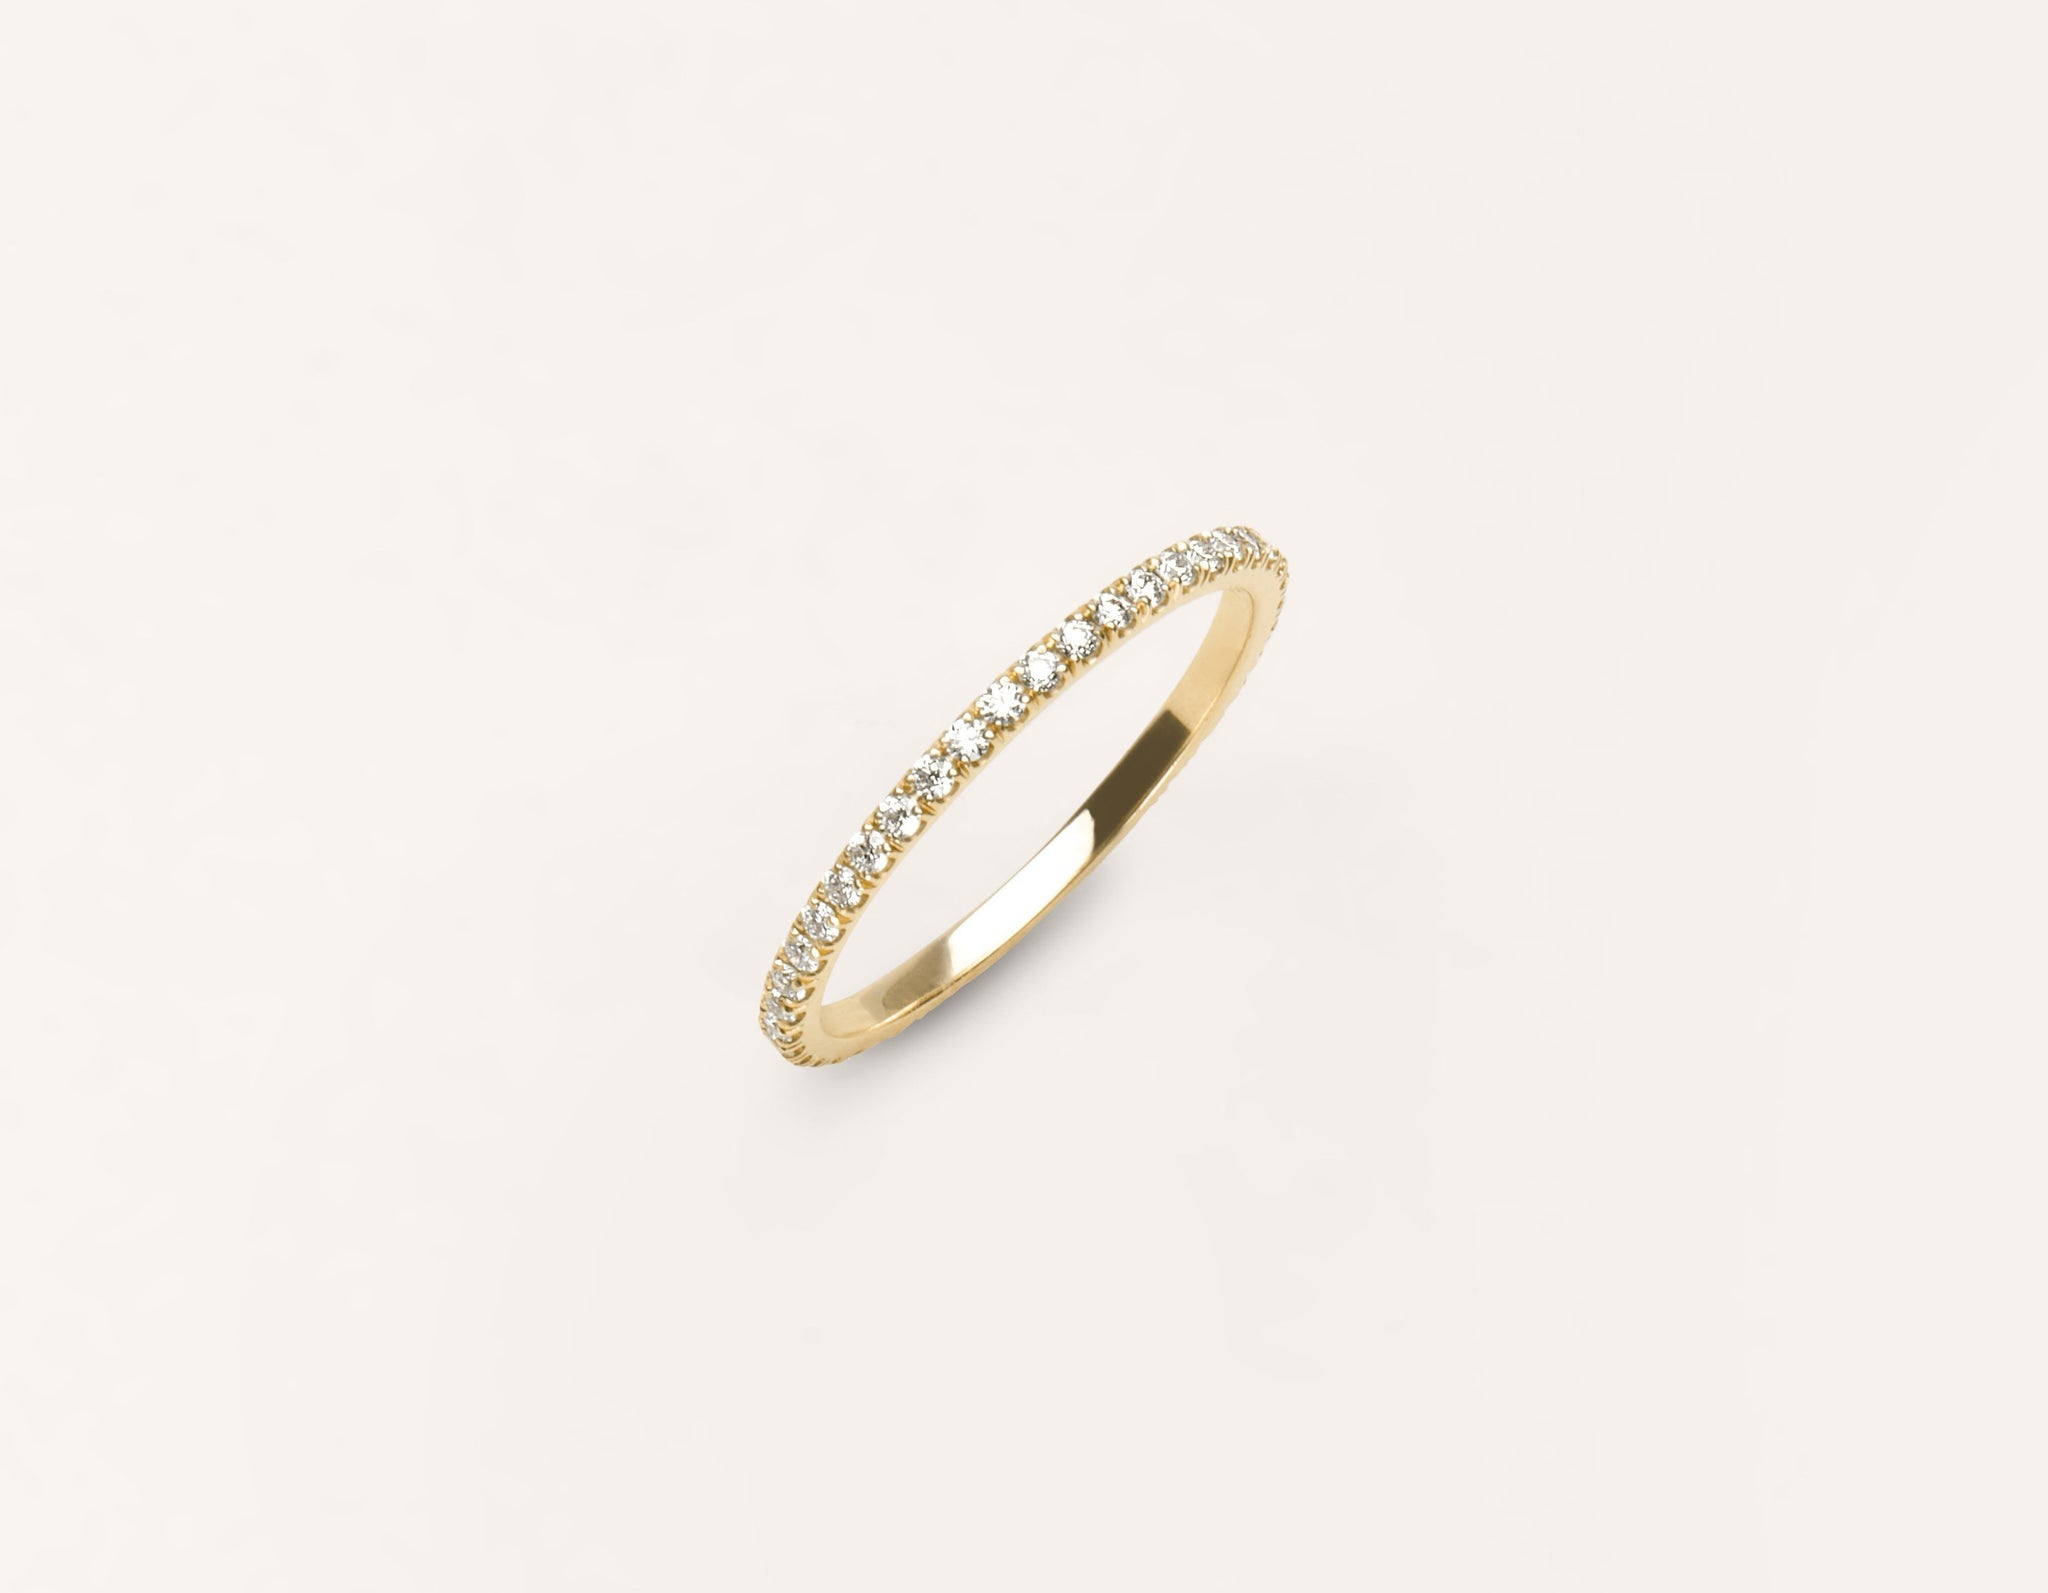 Minimalist 18k solid yellow gold Infinity Diamond Pave Wedding Band for men women Vrai and Oro